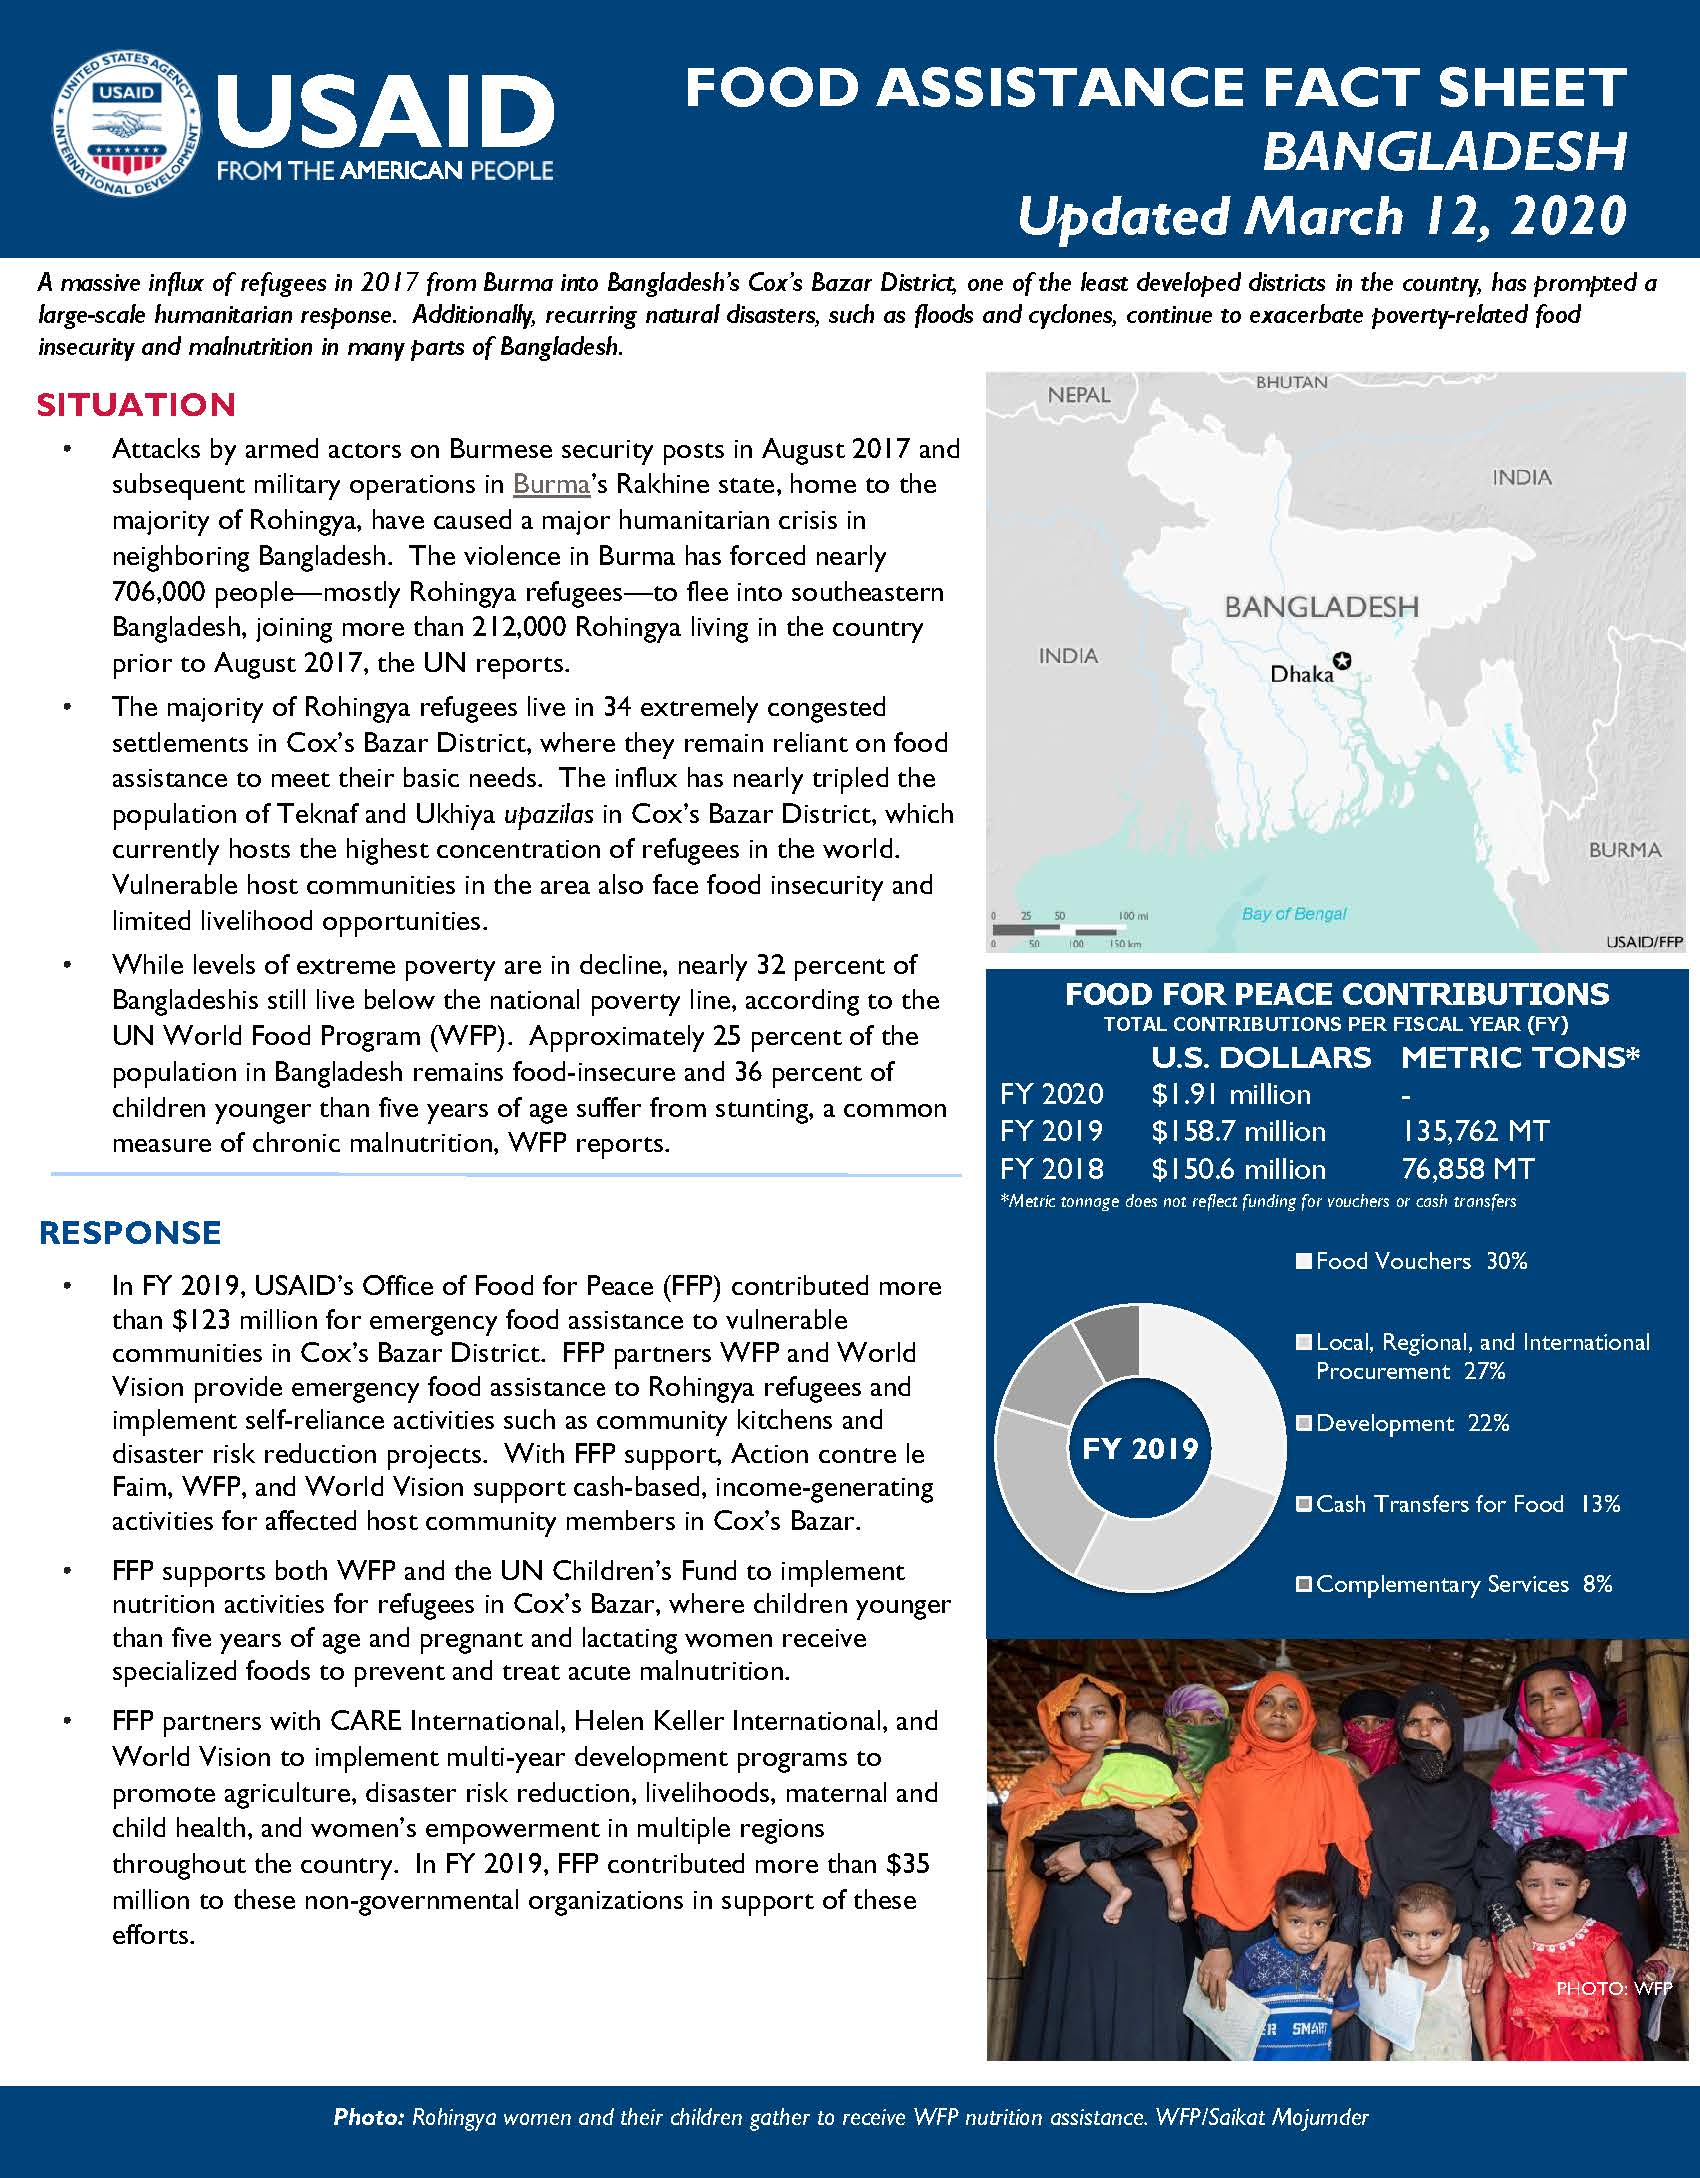 Food Assistance Fact Sheet - Bangladesh